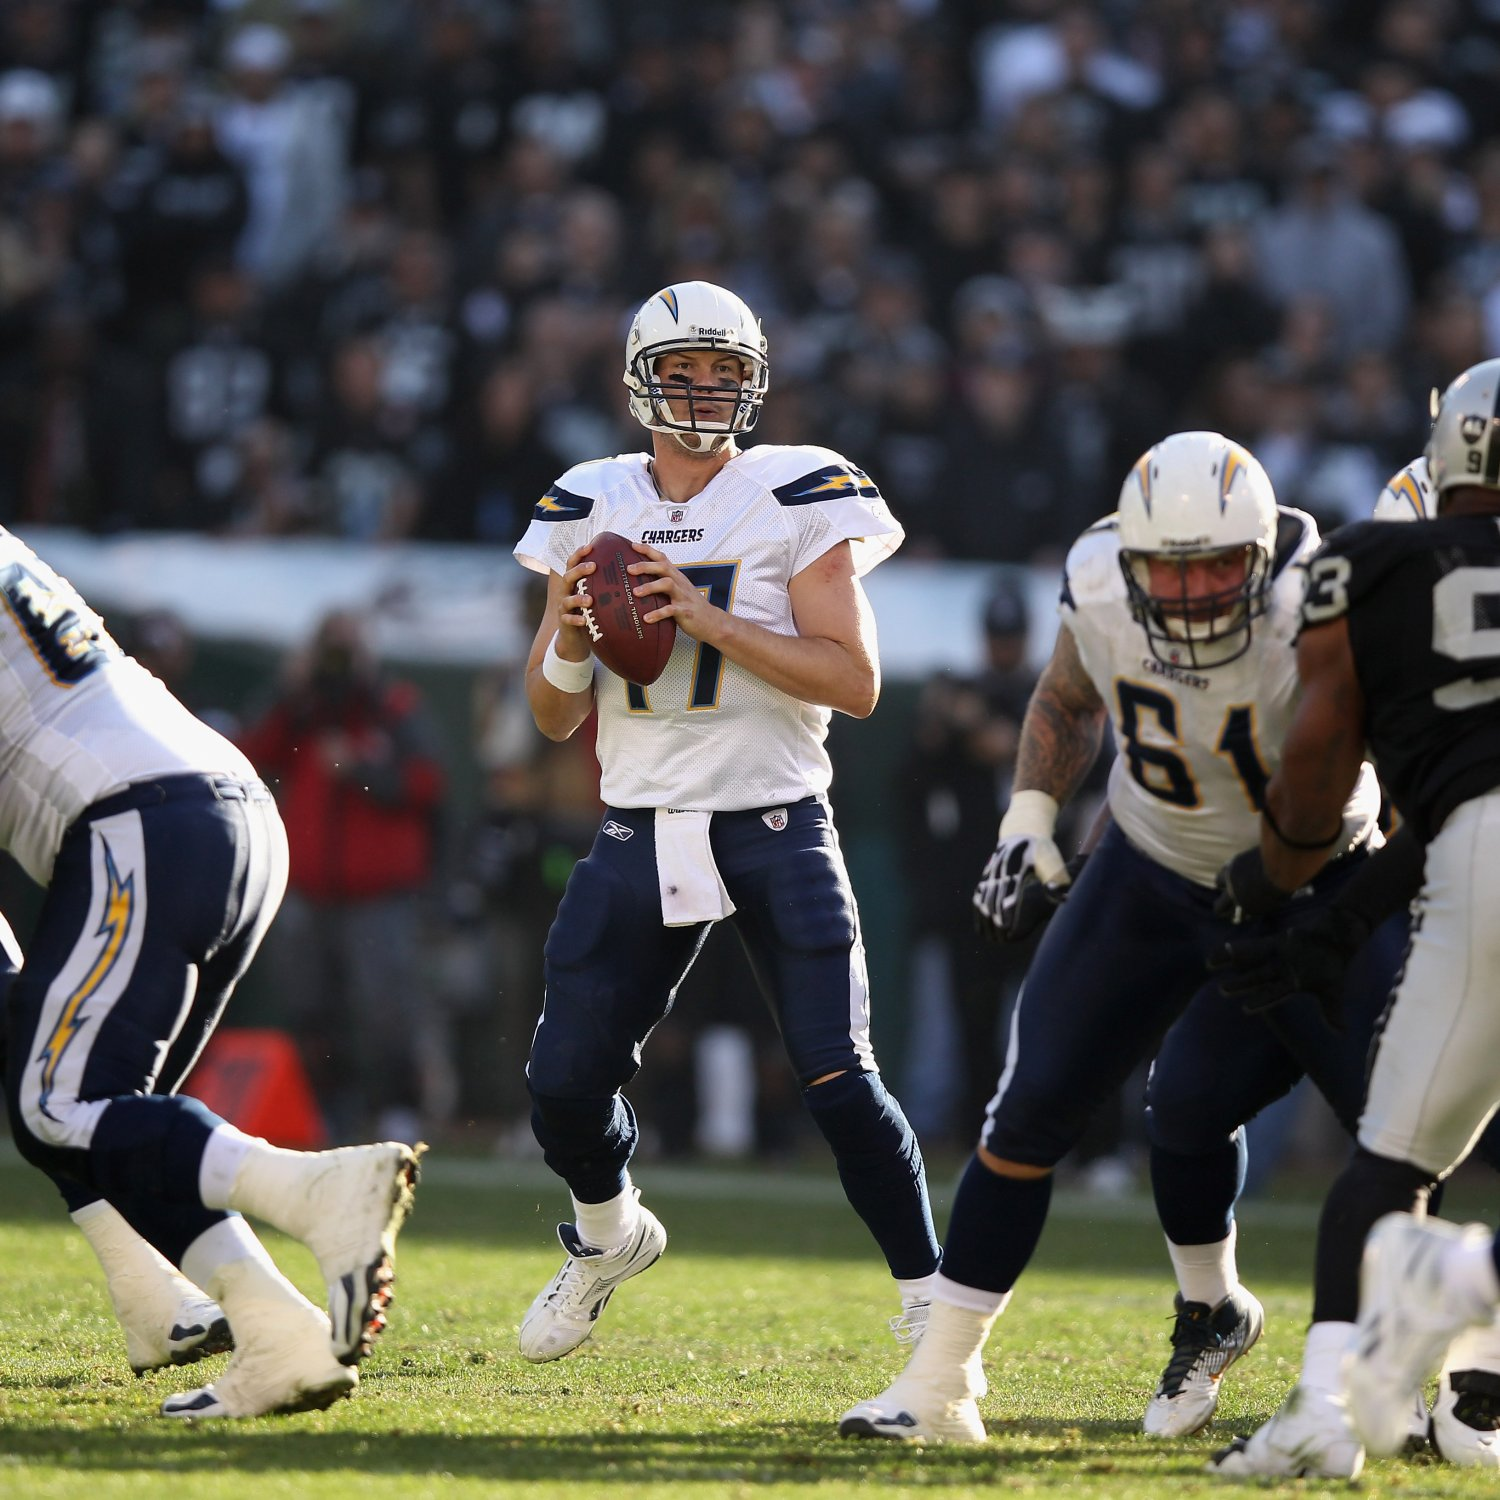 San Diego Chargers Broadcast: Chargers Vs Raiders: TV Schedule, Live Stream, Spread